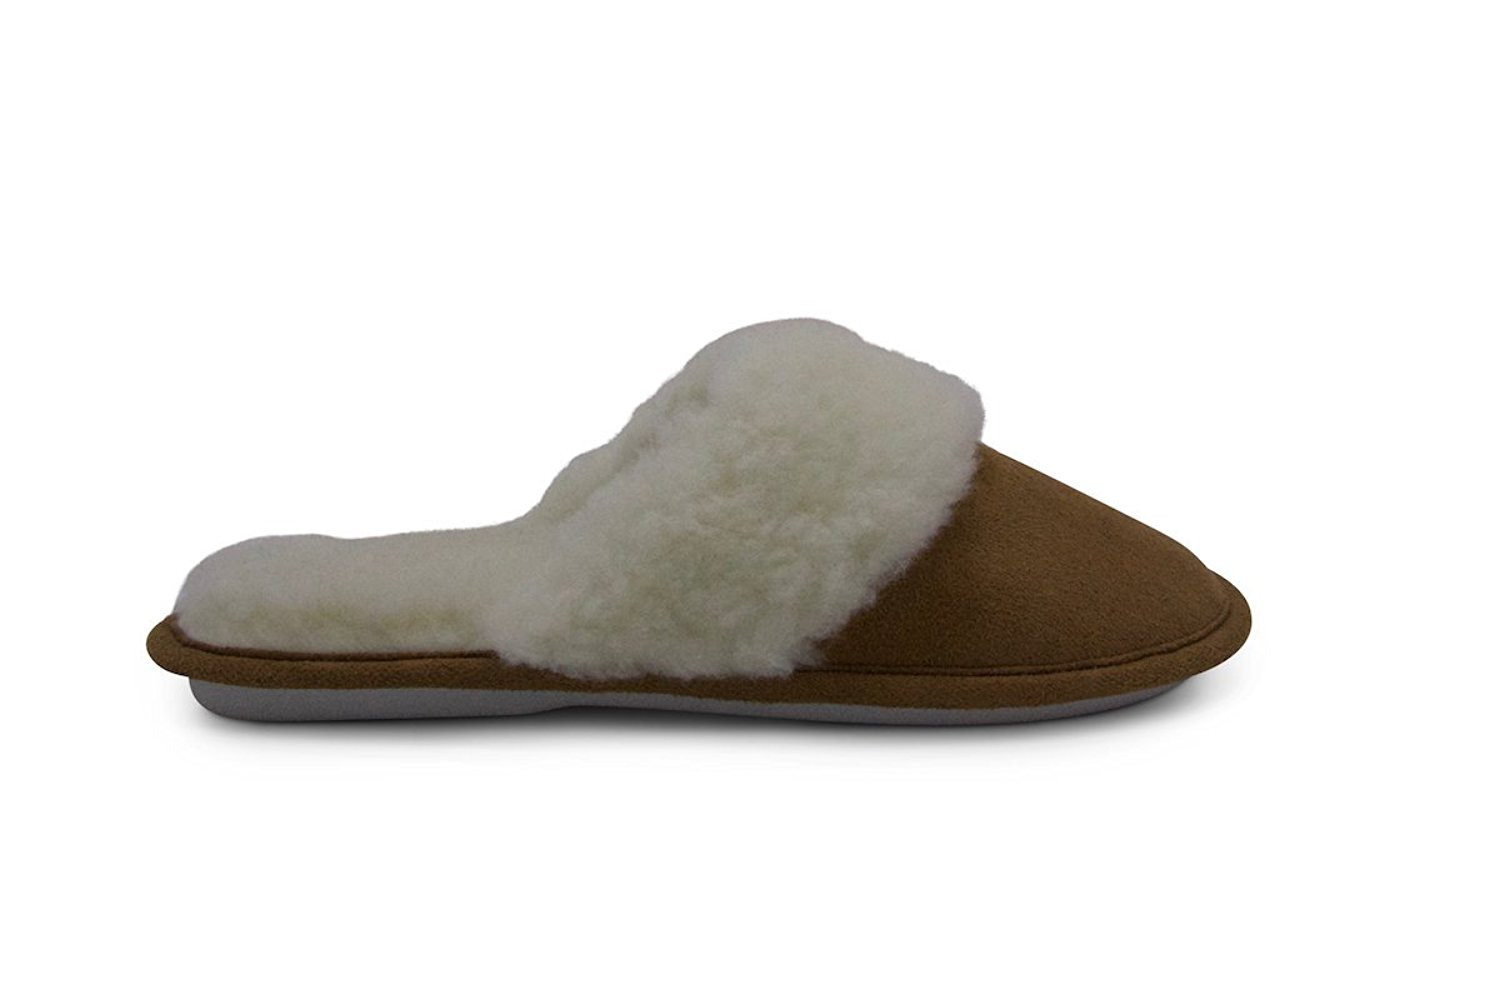 Aussie Merino Fur Lined Wool Slipper Cozy Indoor Warm House Slipper W/Indoor Outdoor Sole-Victoria